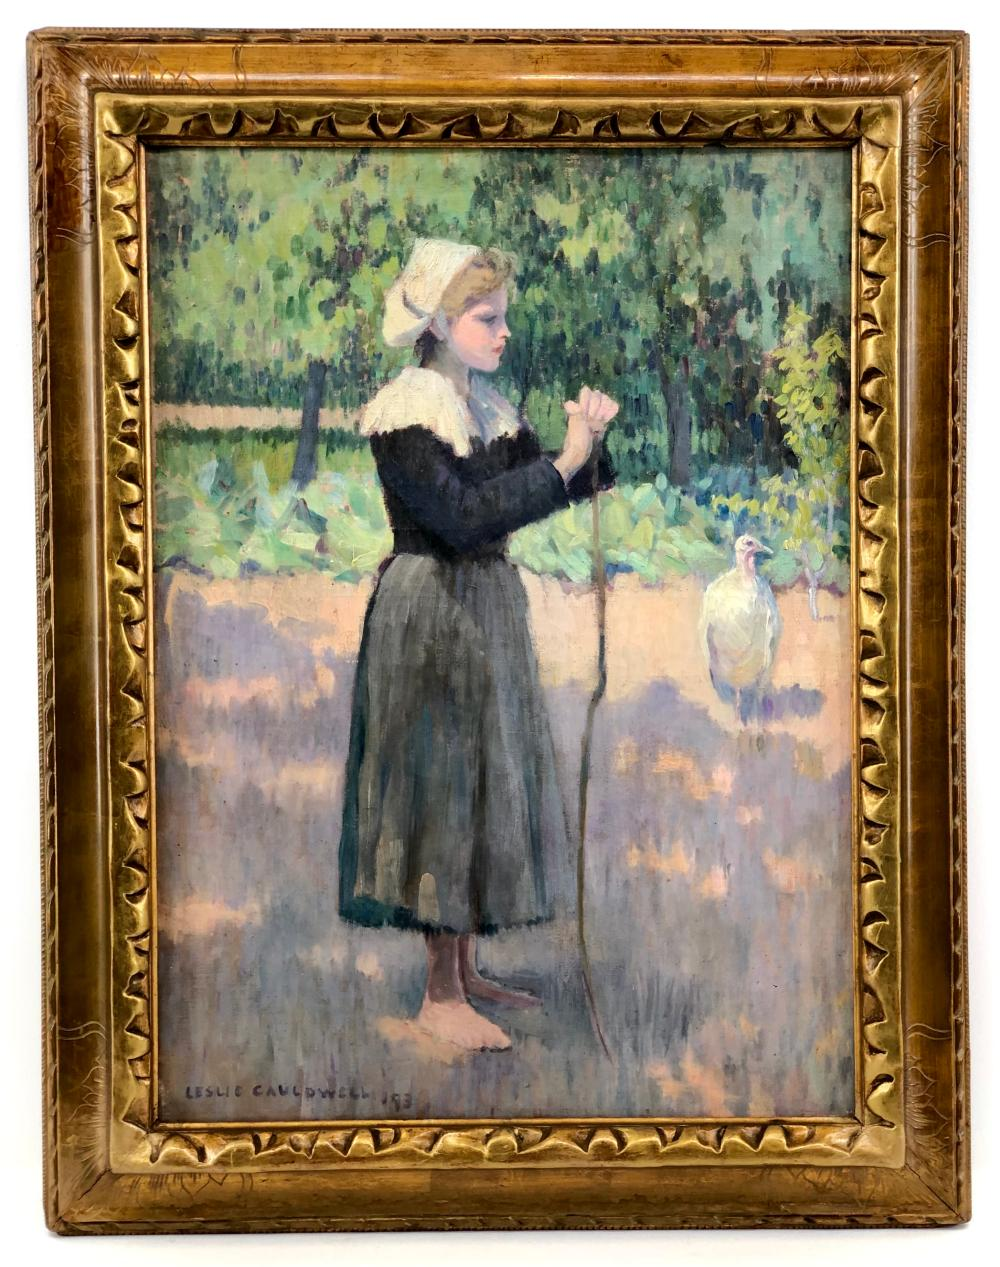 LESLIE GIFFEN CAULDWELL YOUNG BRETON GIRL OIL ON CANVAS